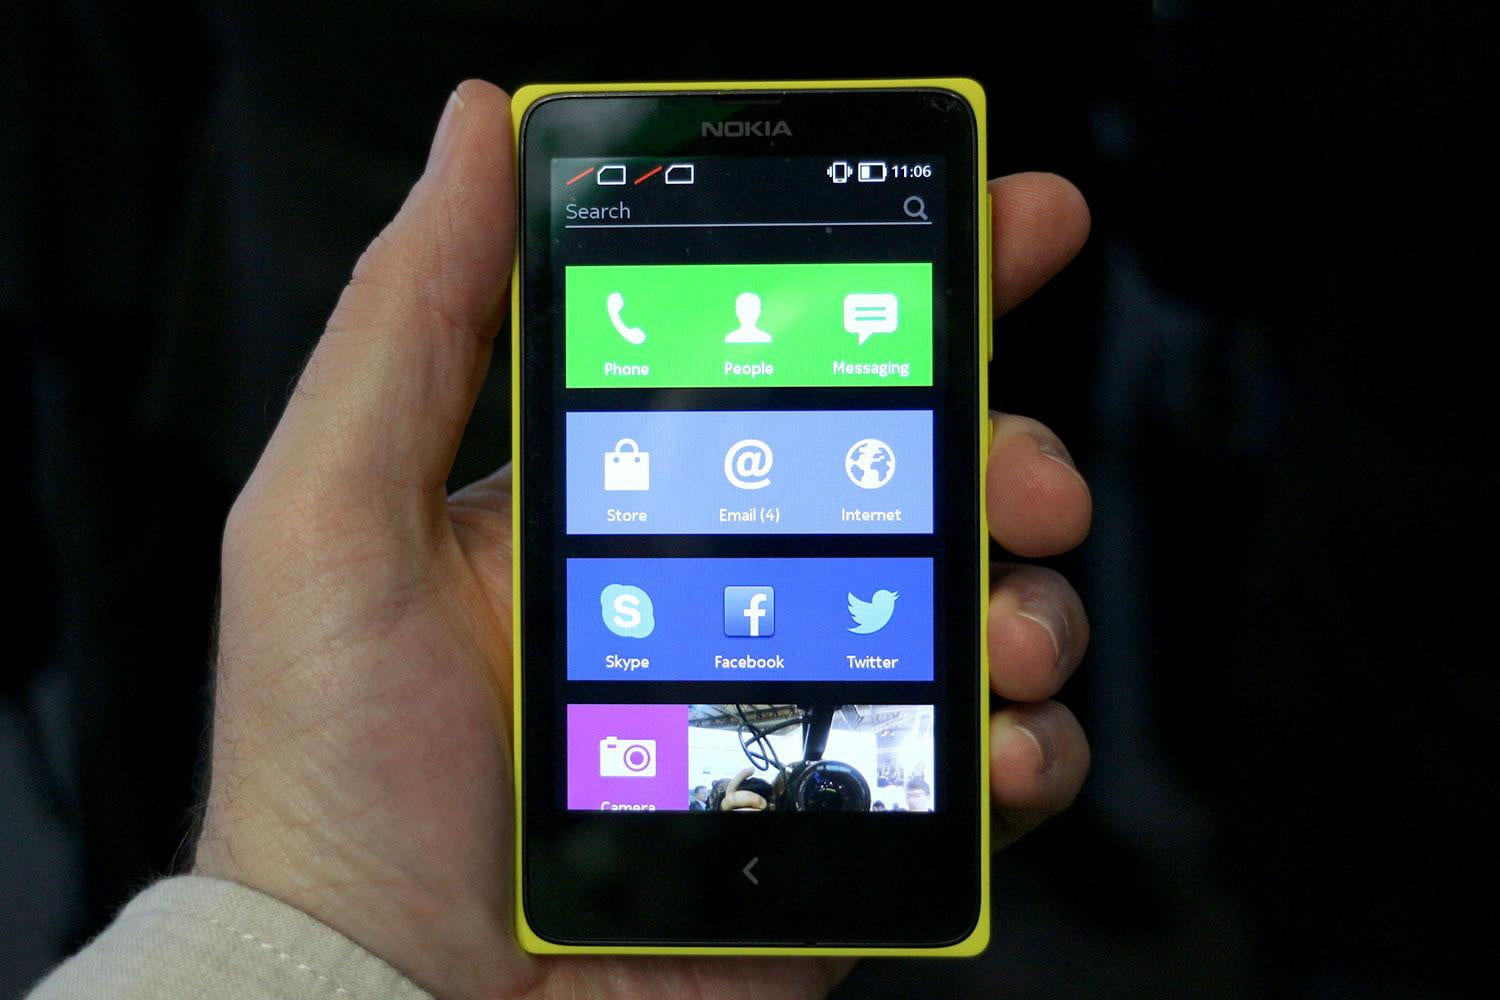 Nokia X hands on: Nokia evicts Google from Android, so Microsoft can